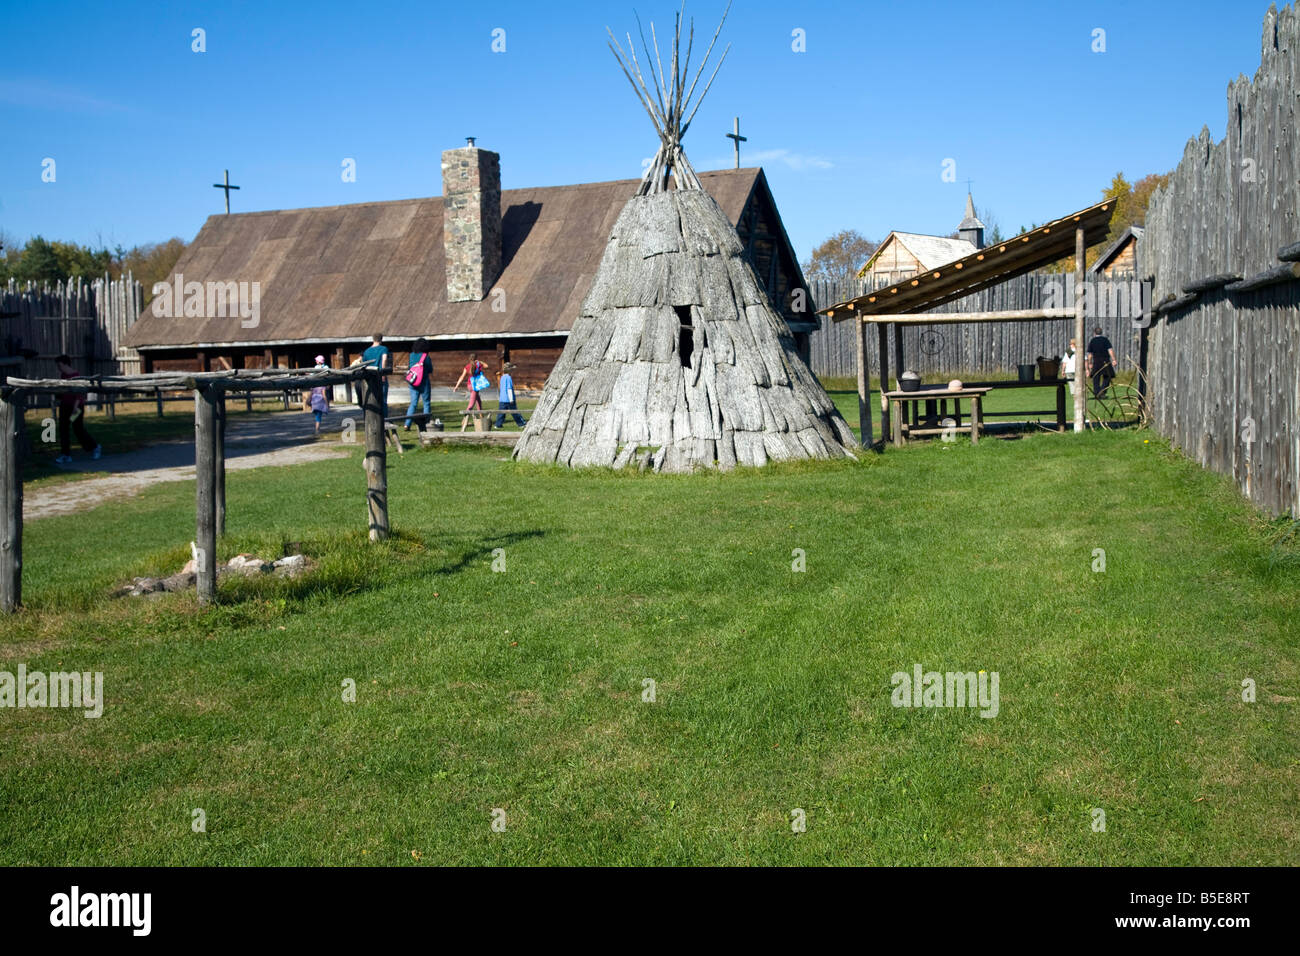 Sainte-Marie among the Hurons Indian Village Midland Ontario Canada - Stock Image